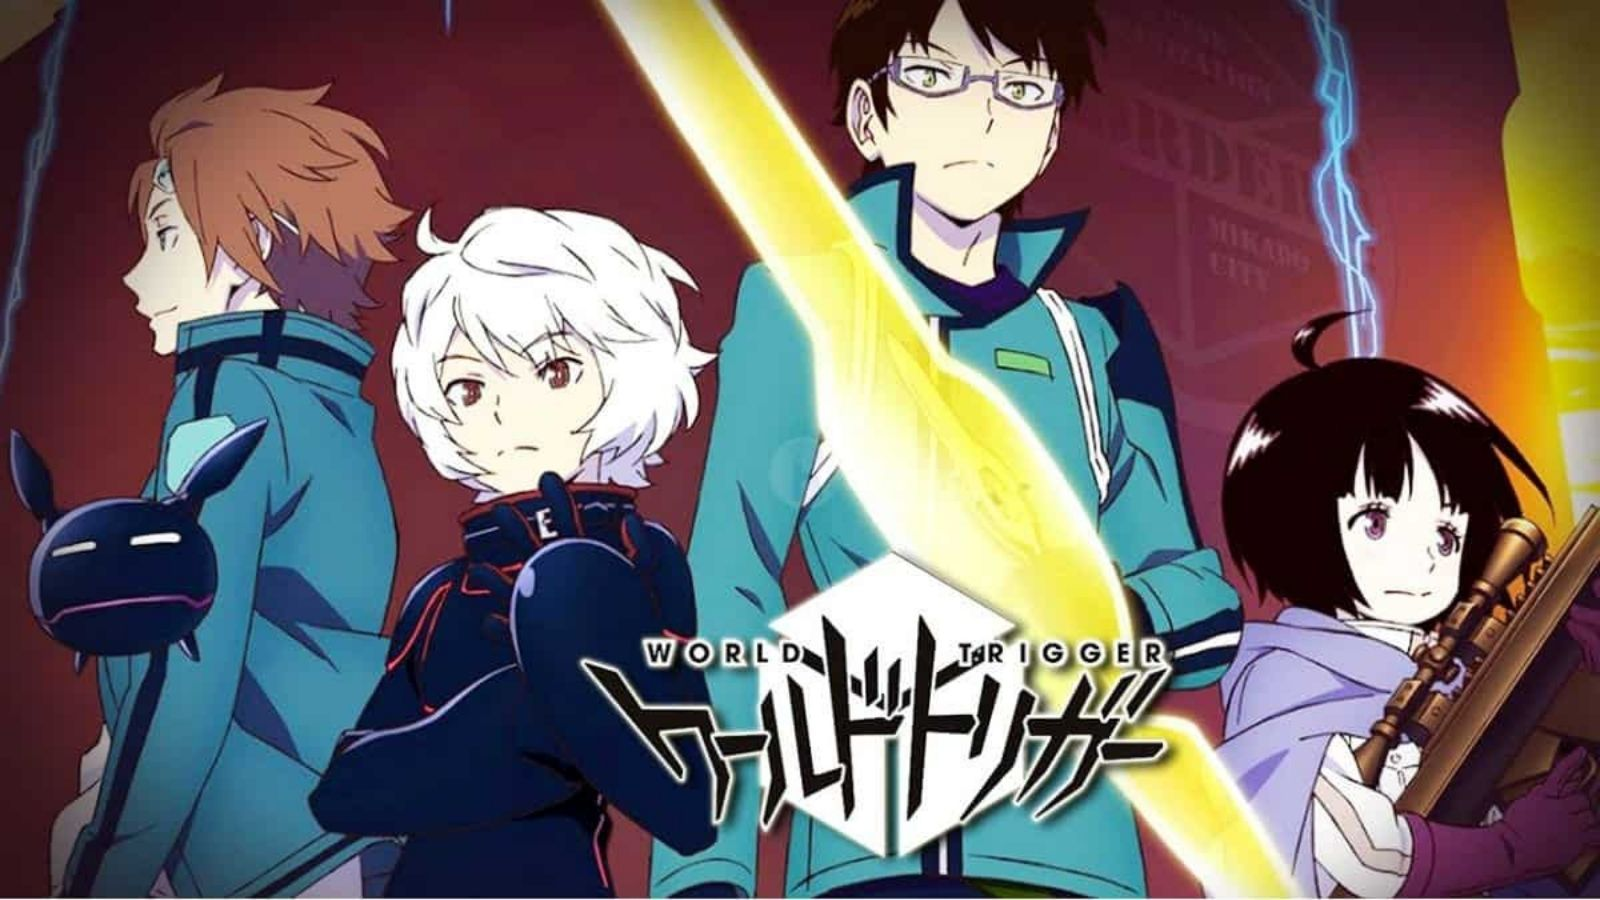 World Trigger Season 2 Episode 6: Release Date, Spoilers and Watch Online